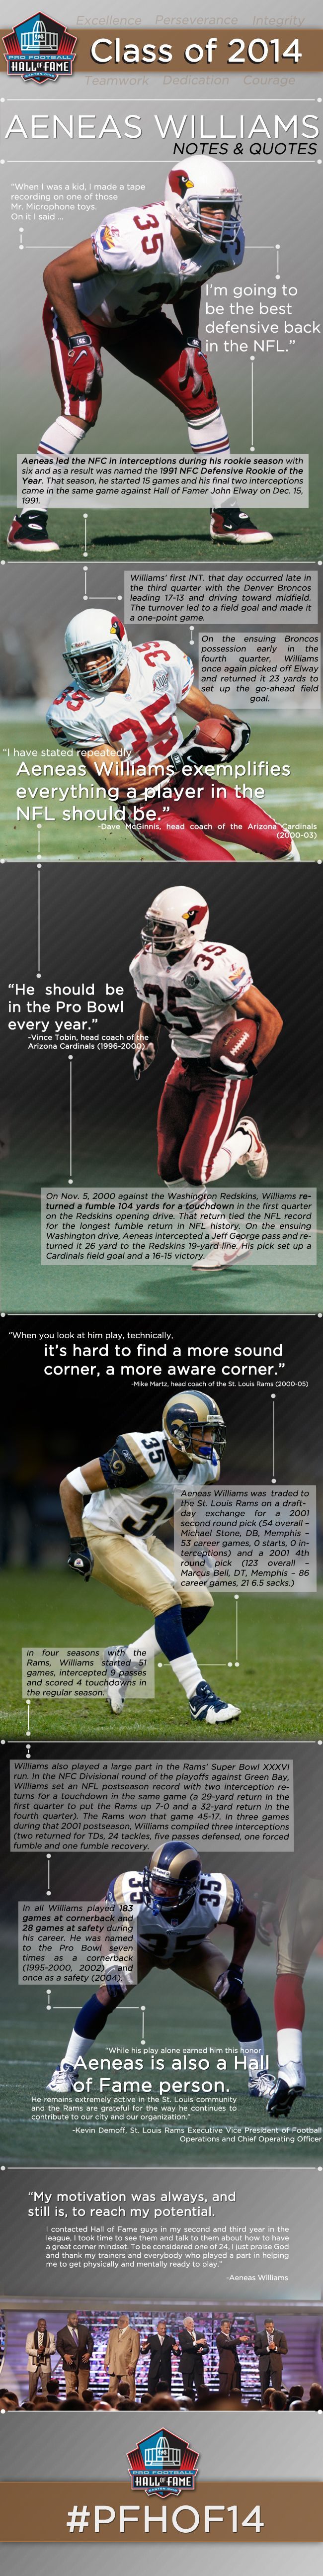 [Infographic] Notes & Quotes from the Pro Football Hall of Fame career of @azcardinals and @stlouisrams DB Aeneas Williams. #Cardinals #Rams